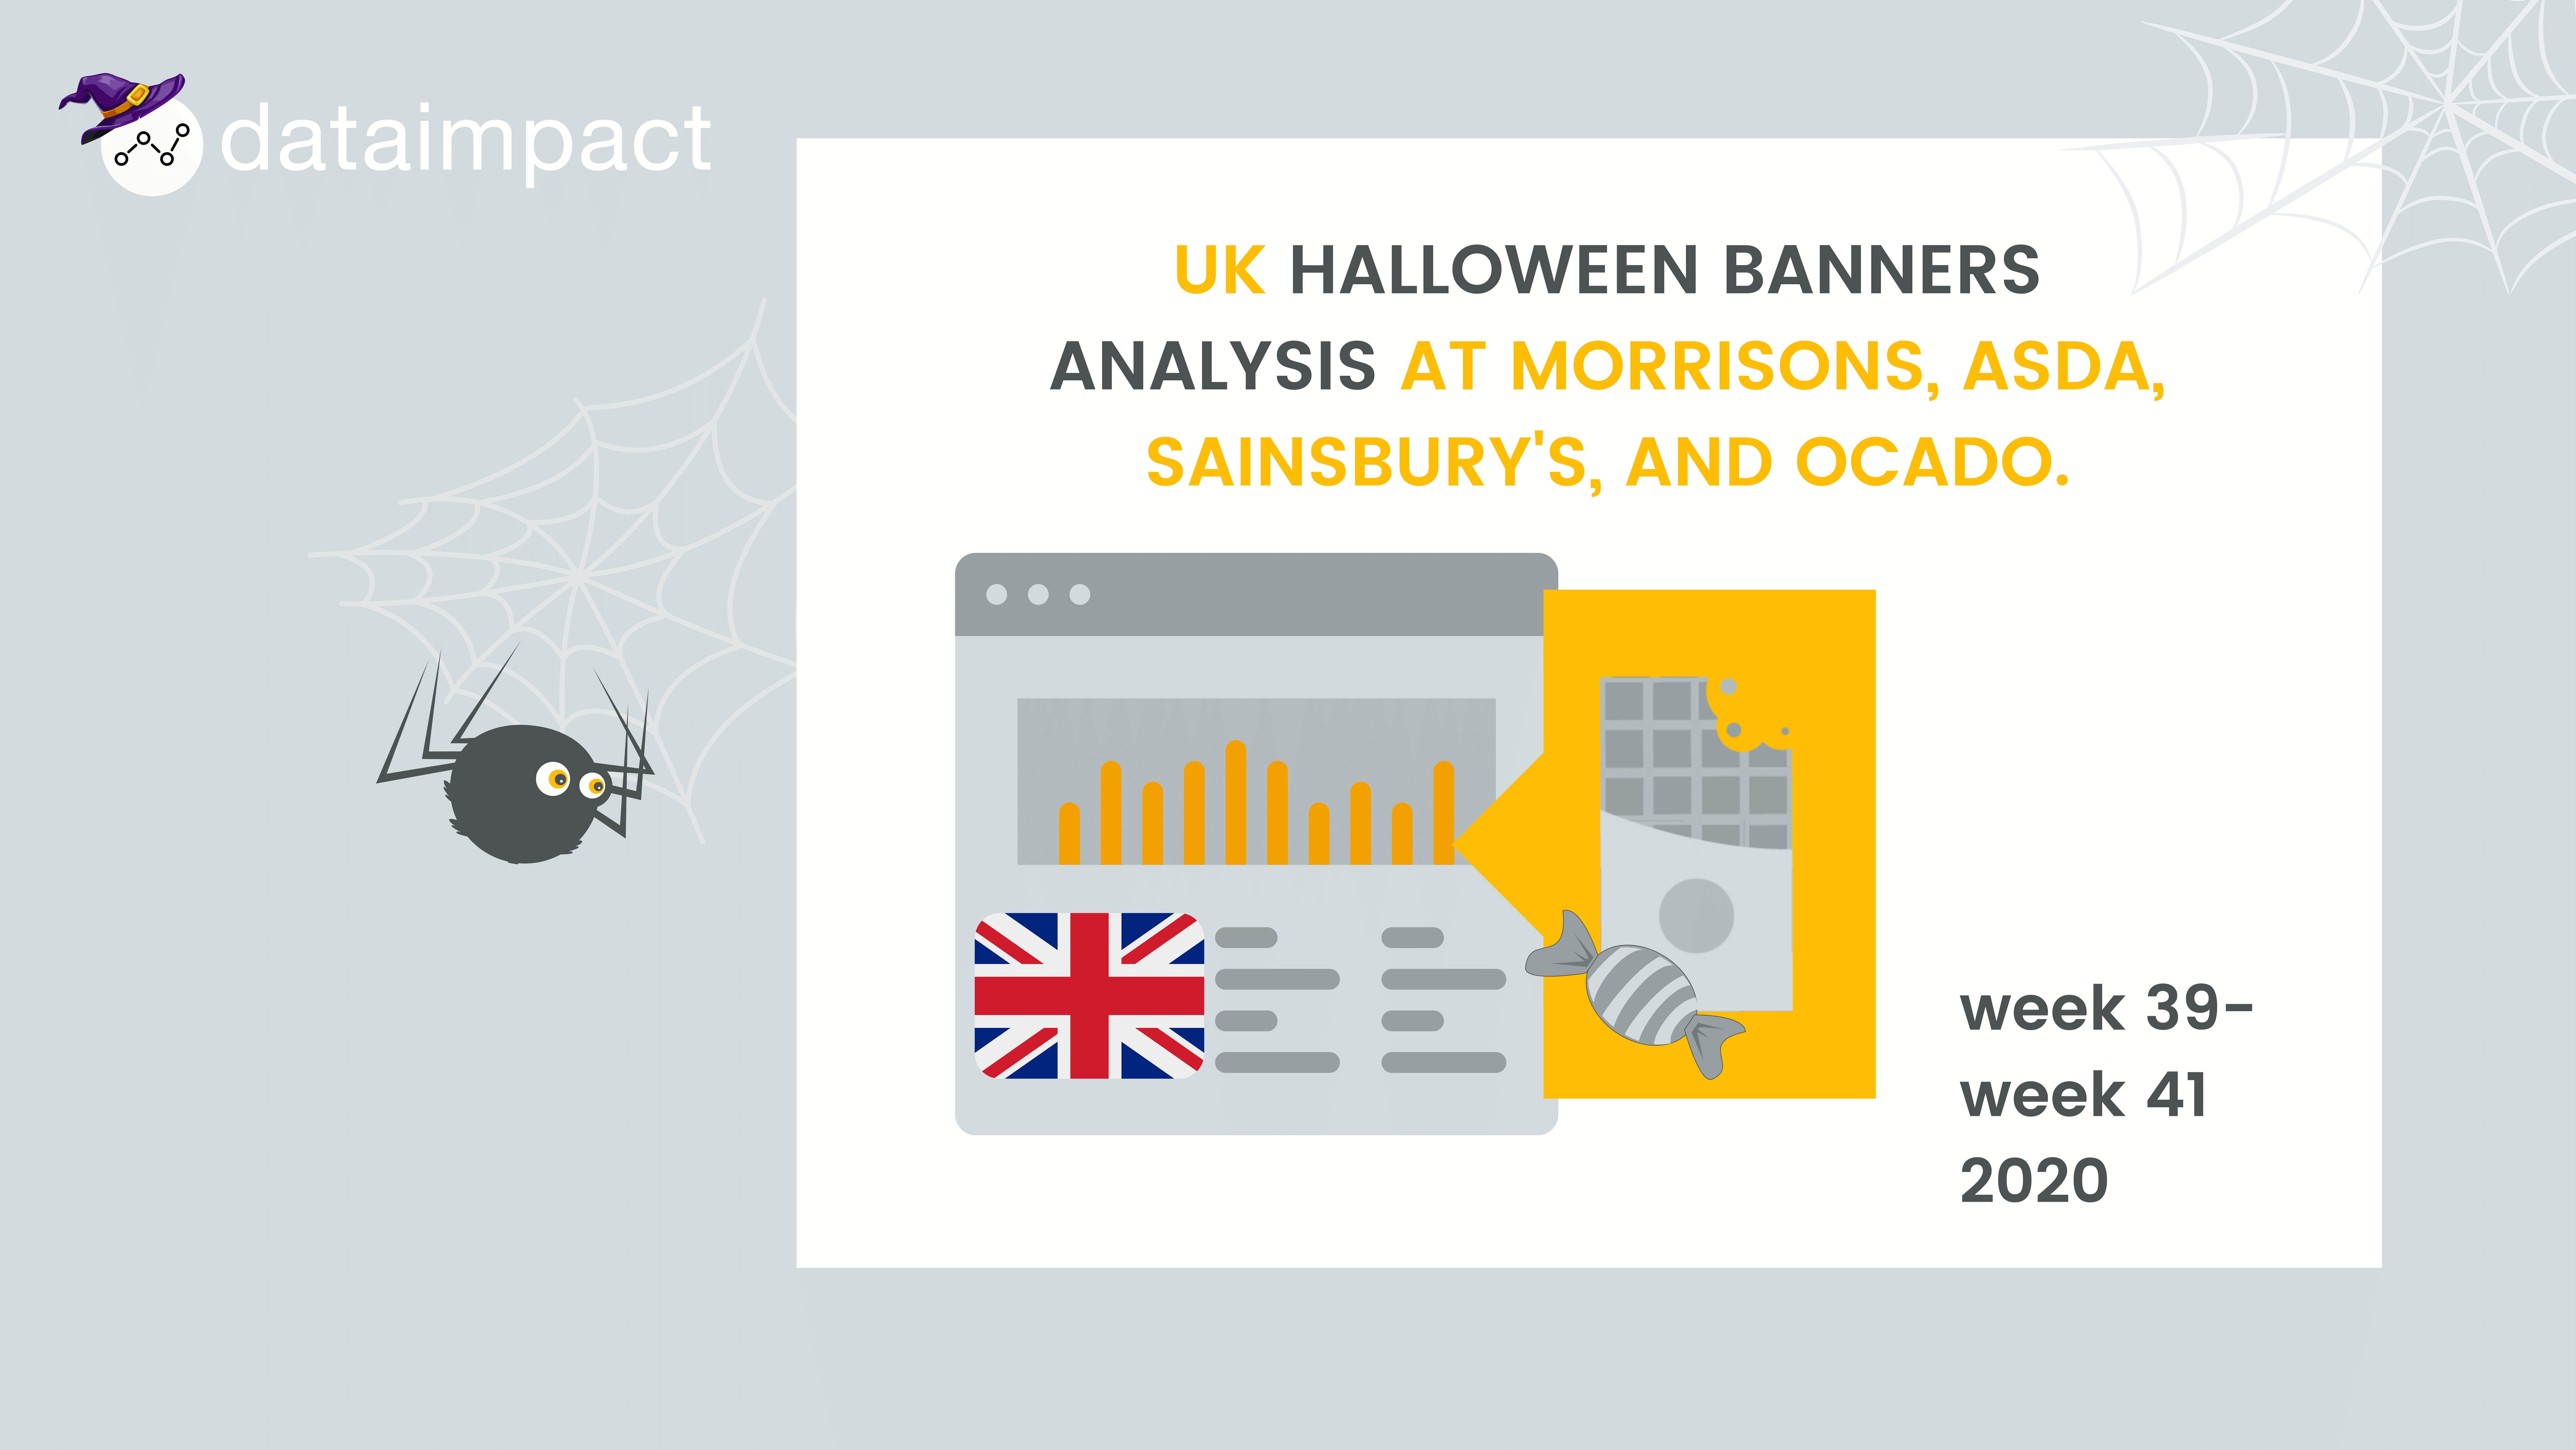 Weekly Analysis: UK Halloween banners analysis at Morrisons, Asda, Sainsbury's, and Ocado.